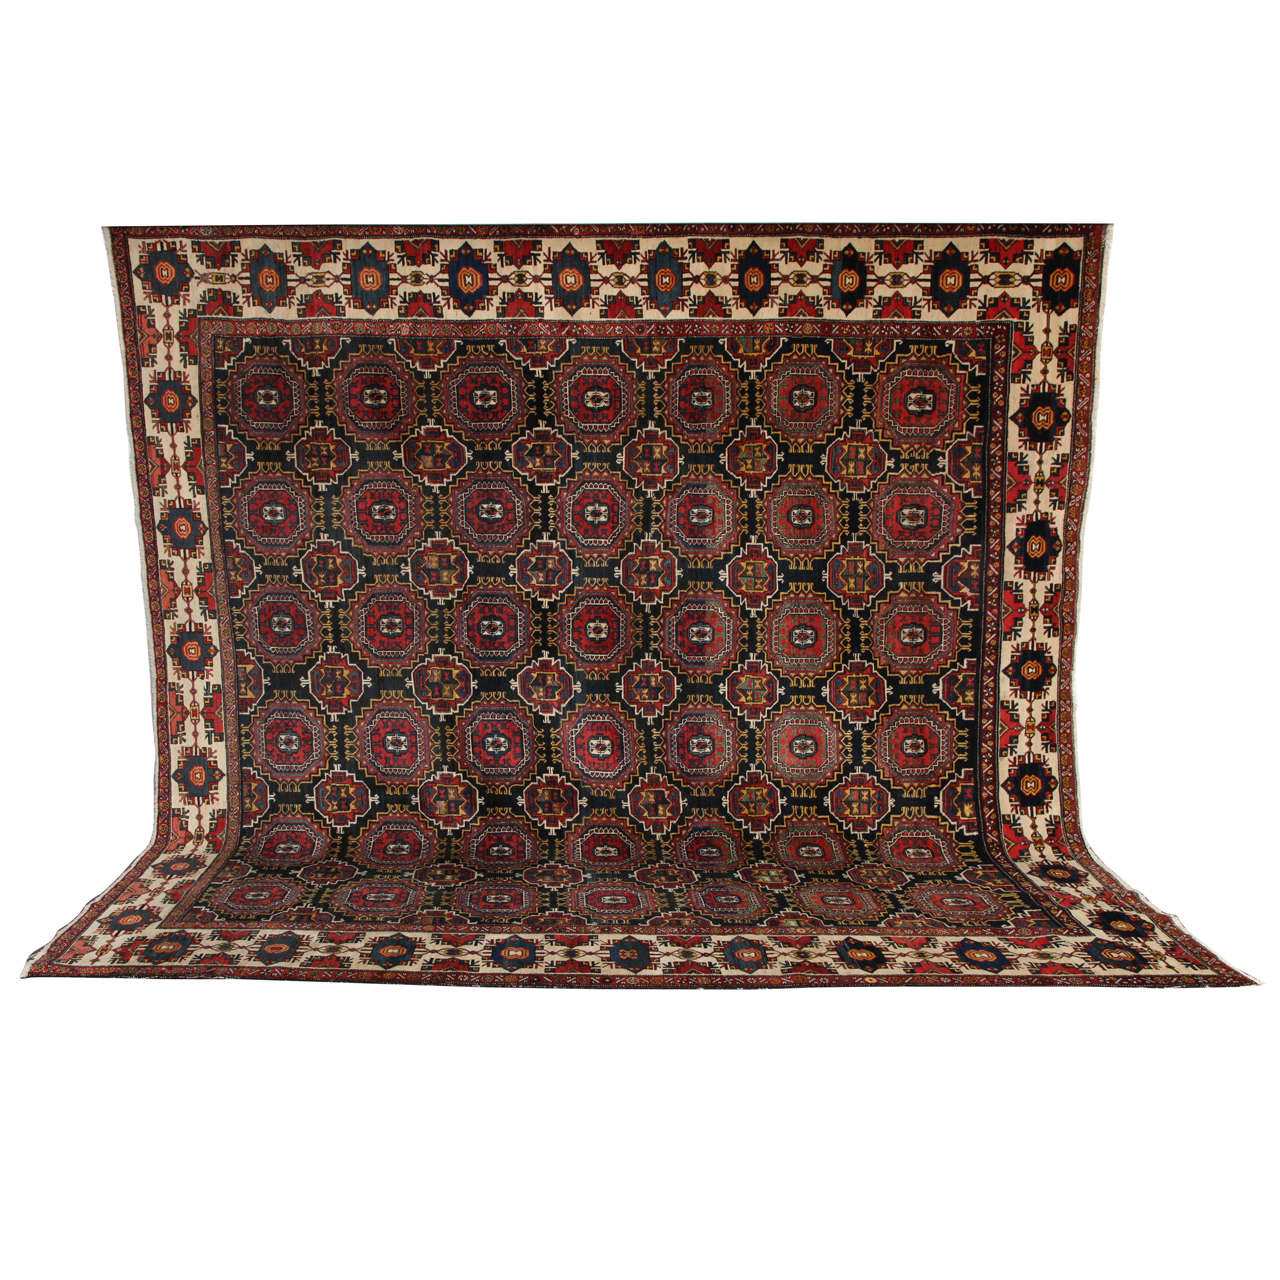 Persian Amal Ziegler Bakhtiari Carpet, circa 1890 For Sale